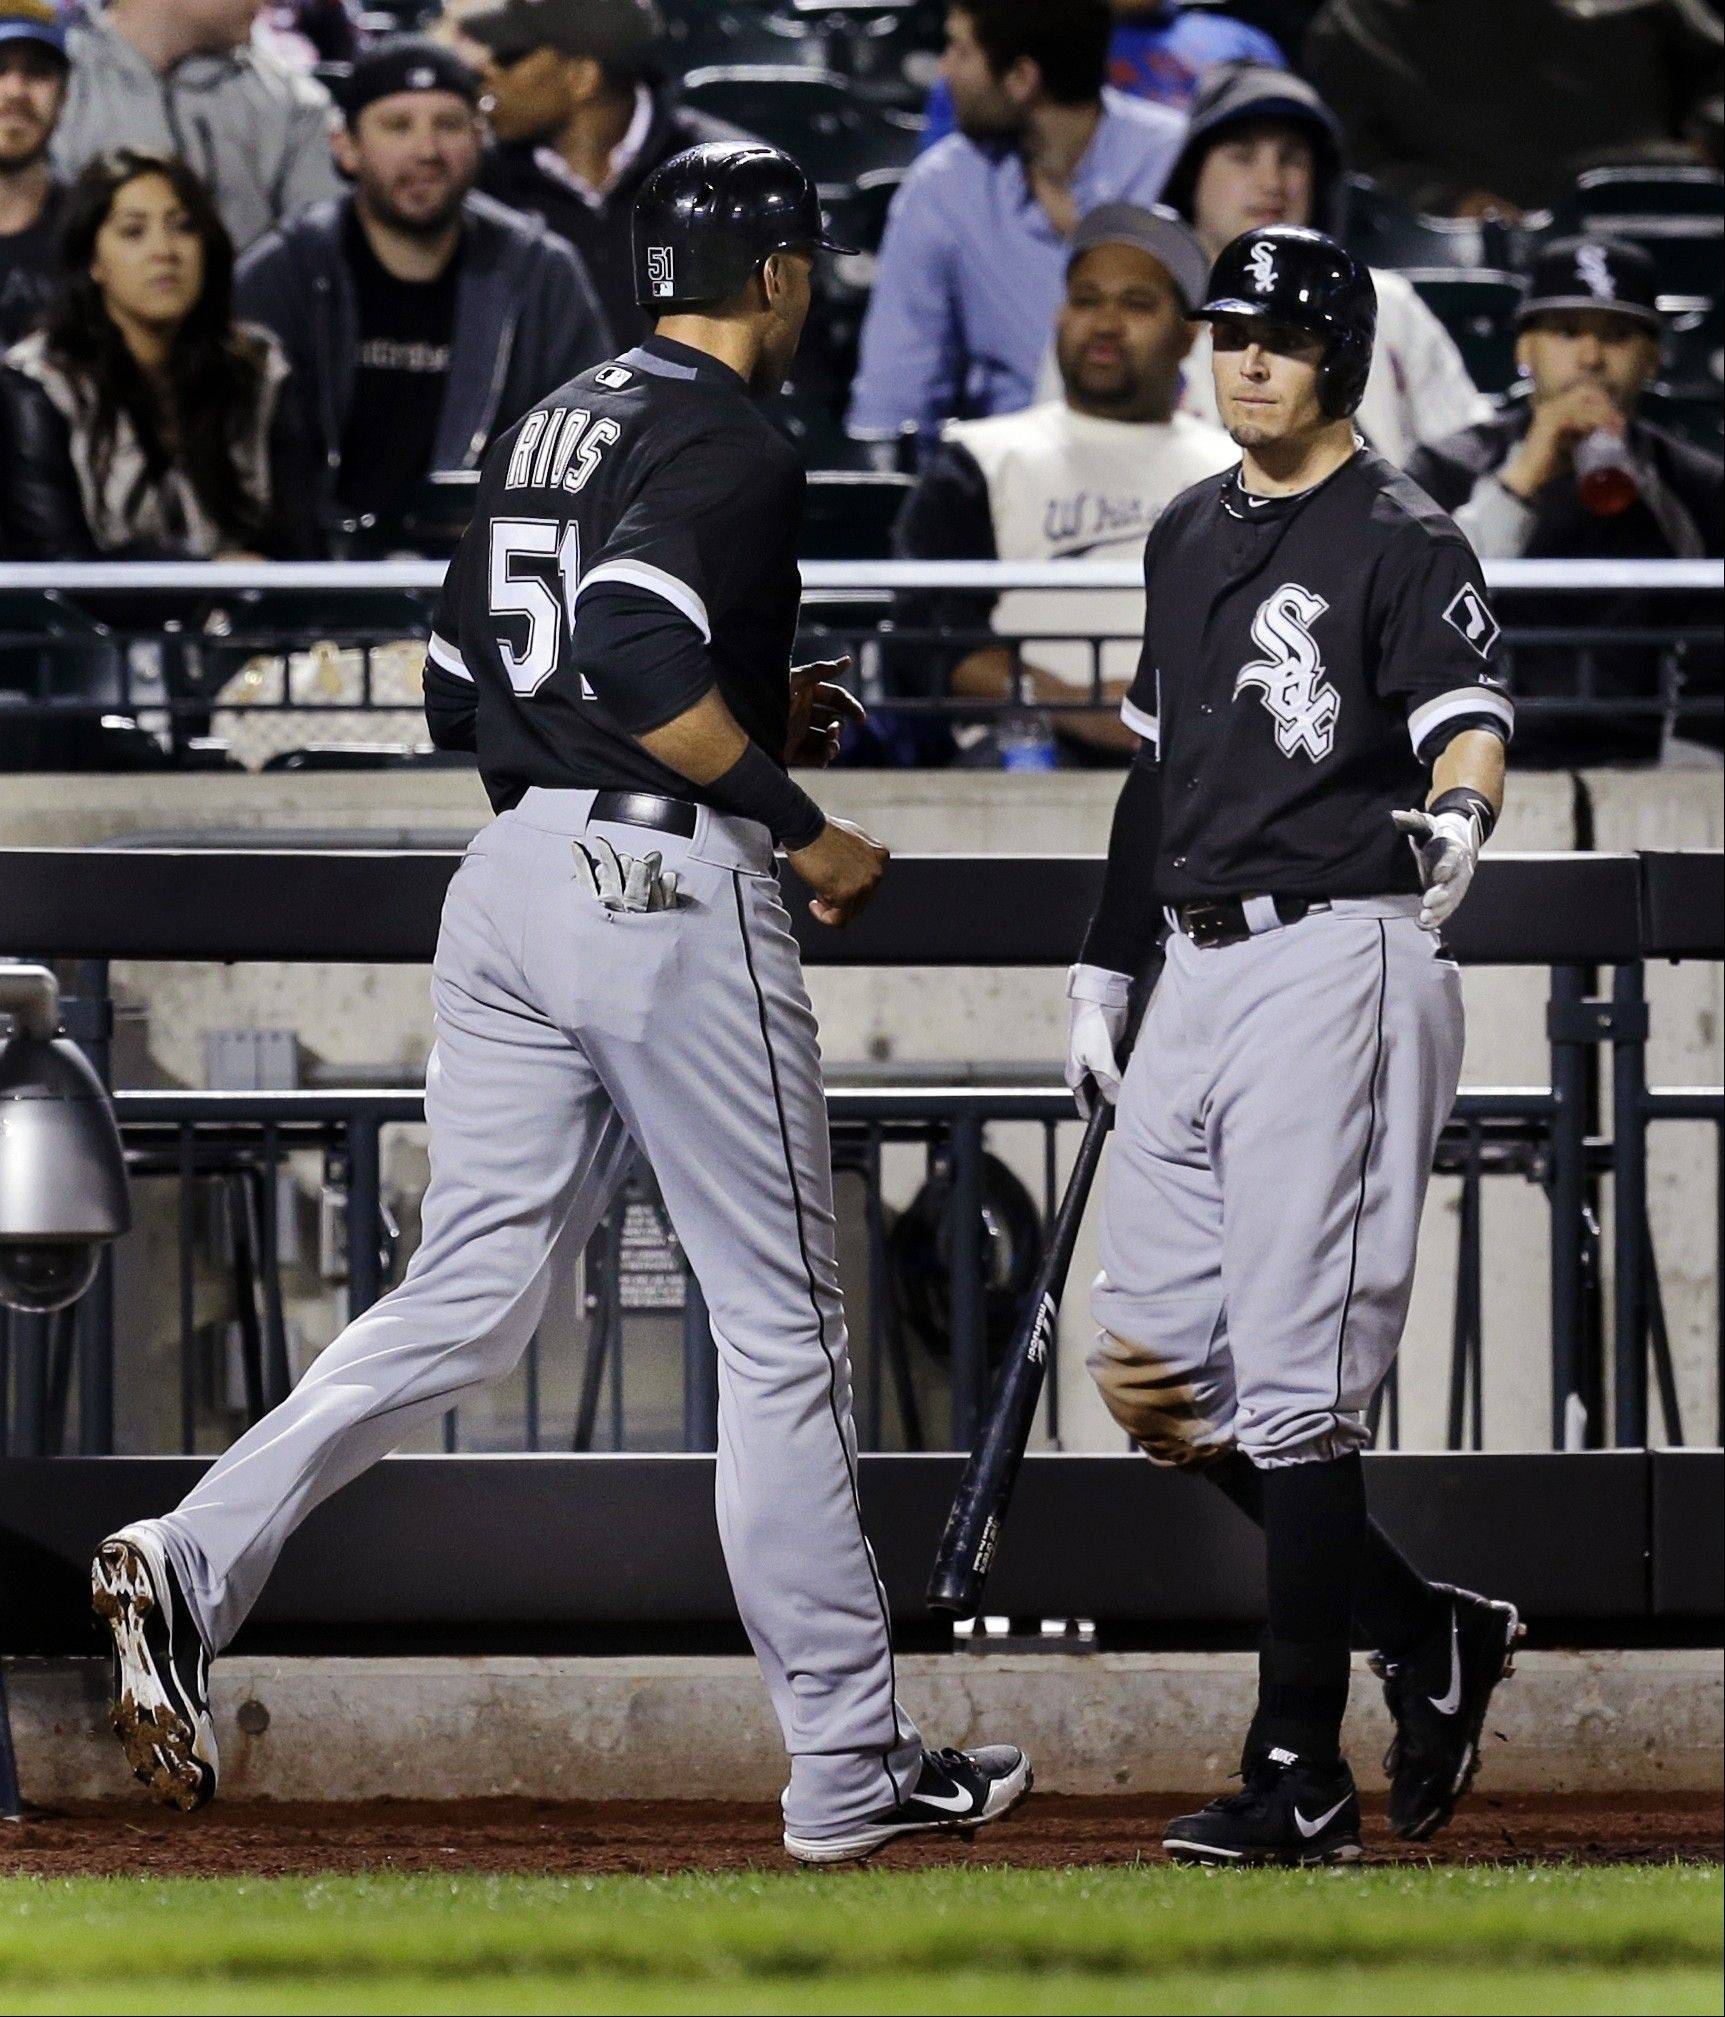 The White Sox's Tyler Greene, right, greets Alex Rios after Rios scored on a single by Paul Konerko Wednesday night against the Mets in New York. The White Sox won 6-3.